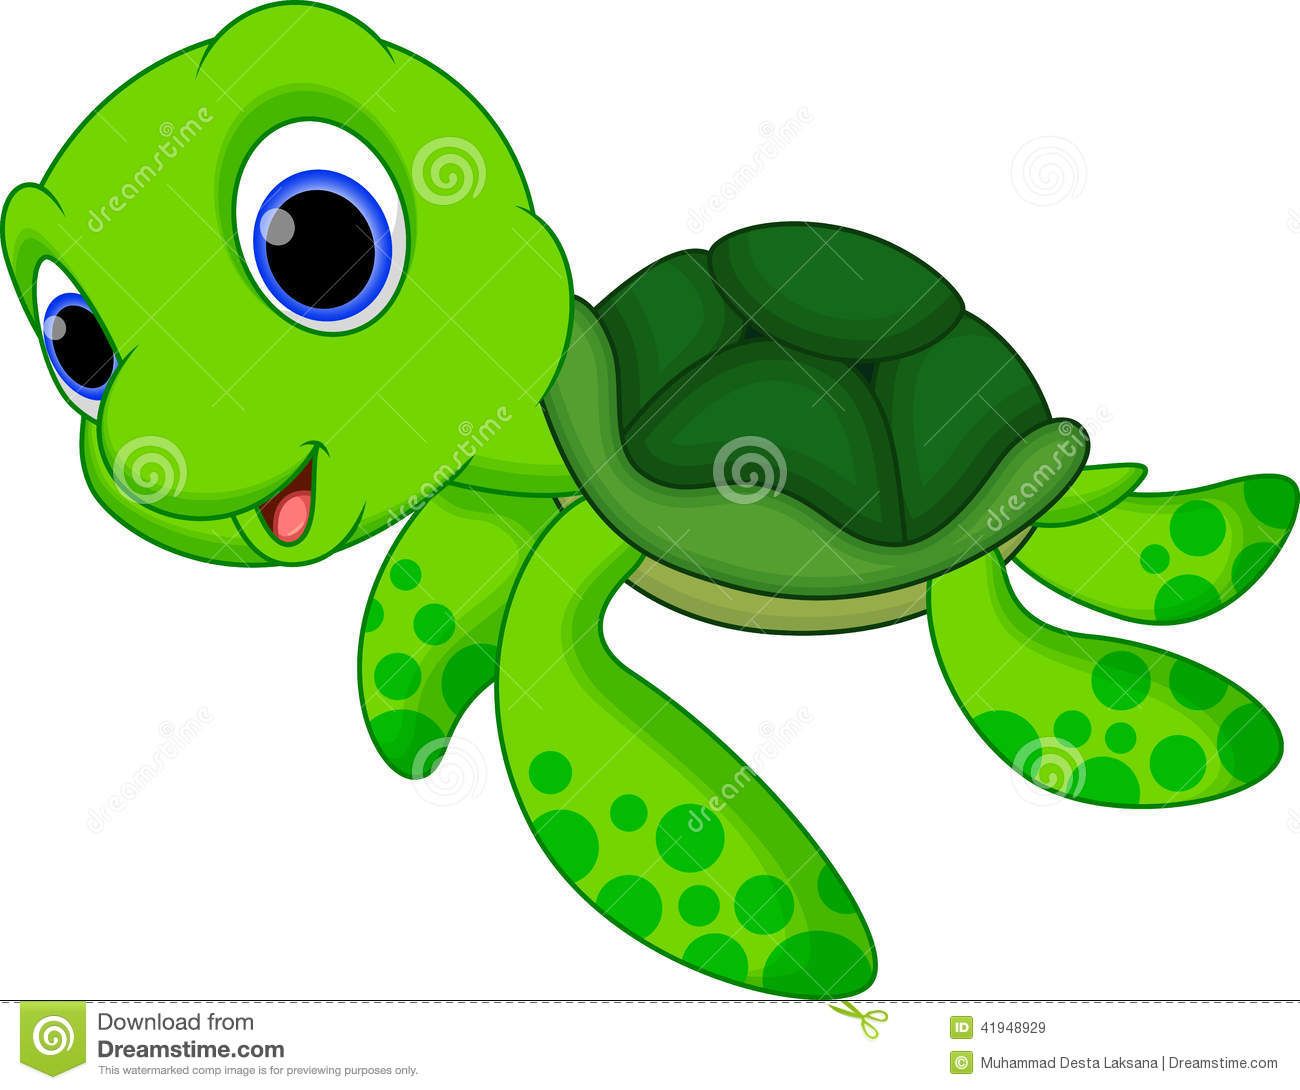 Sea Turtle clipart #1, Download drawings